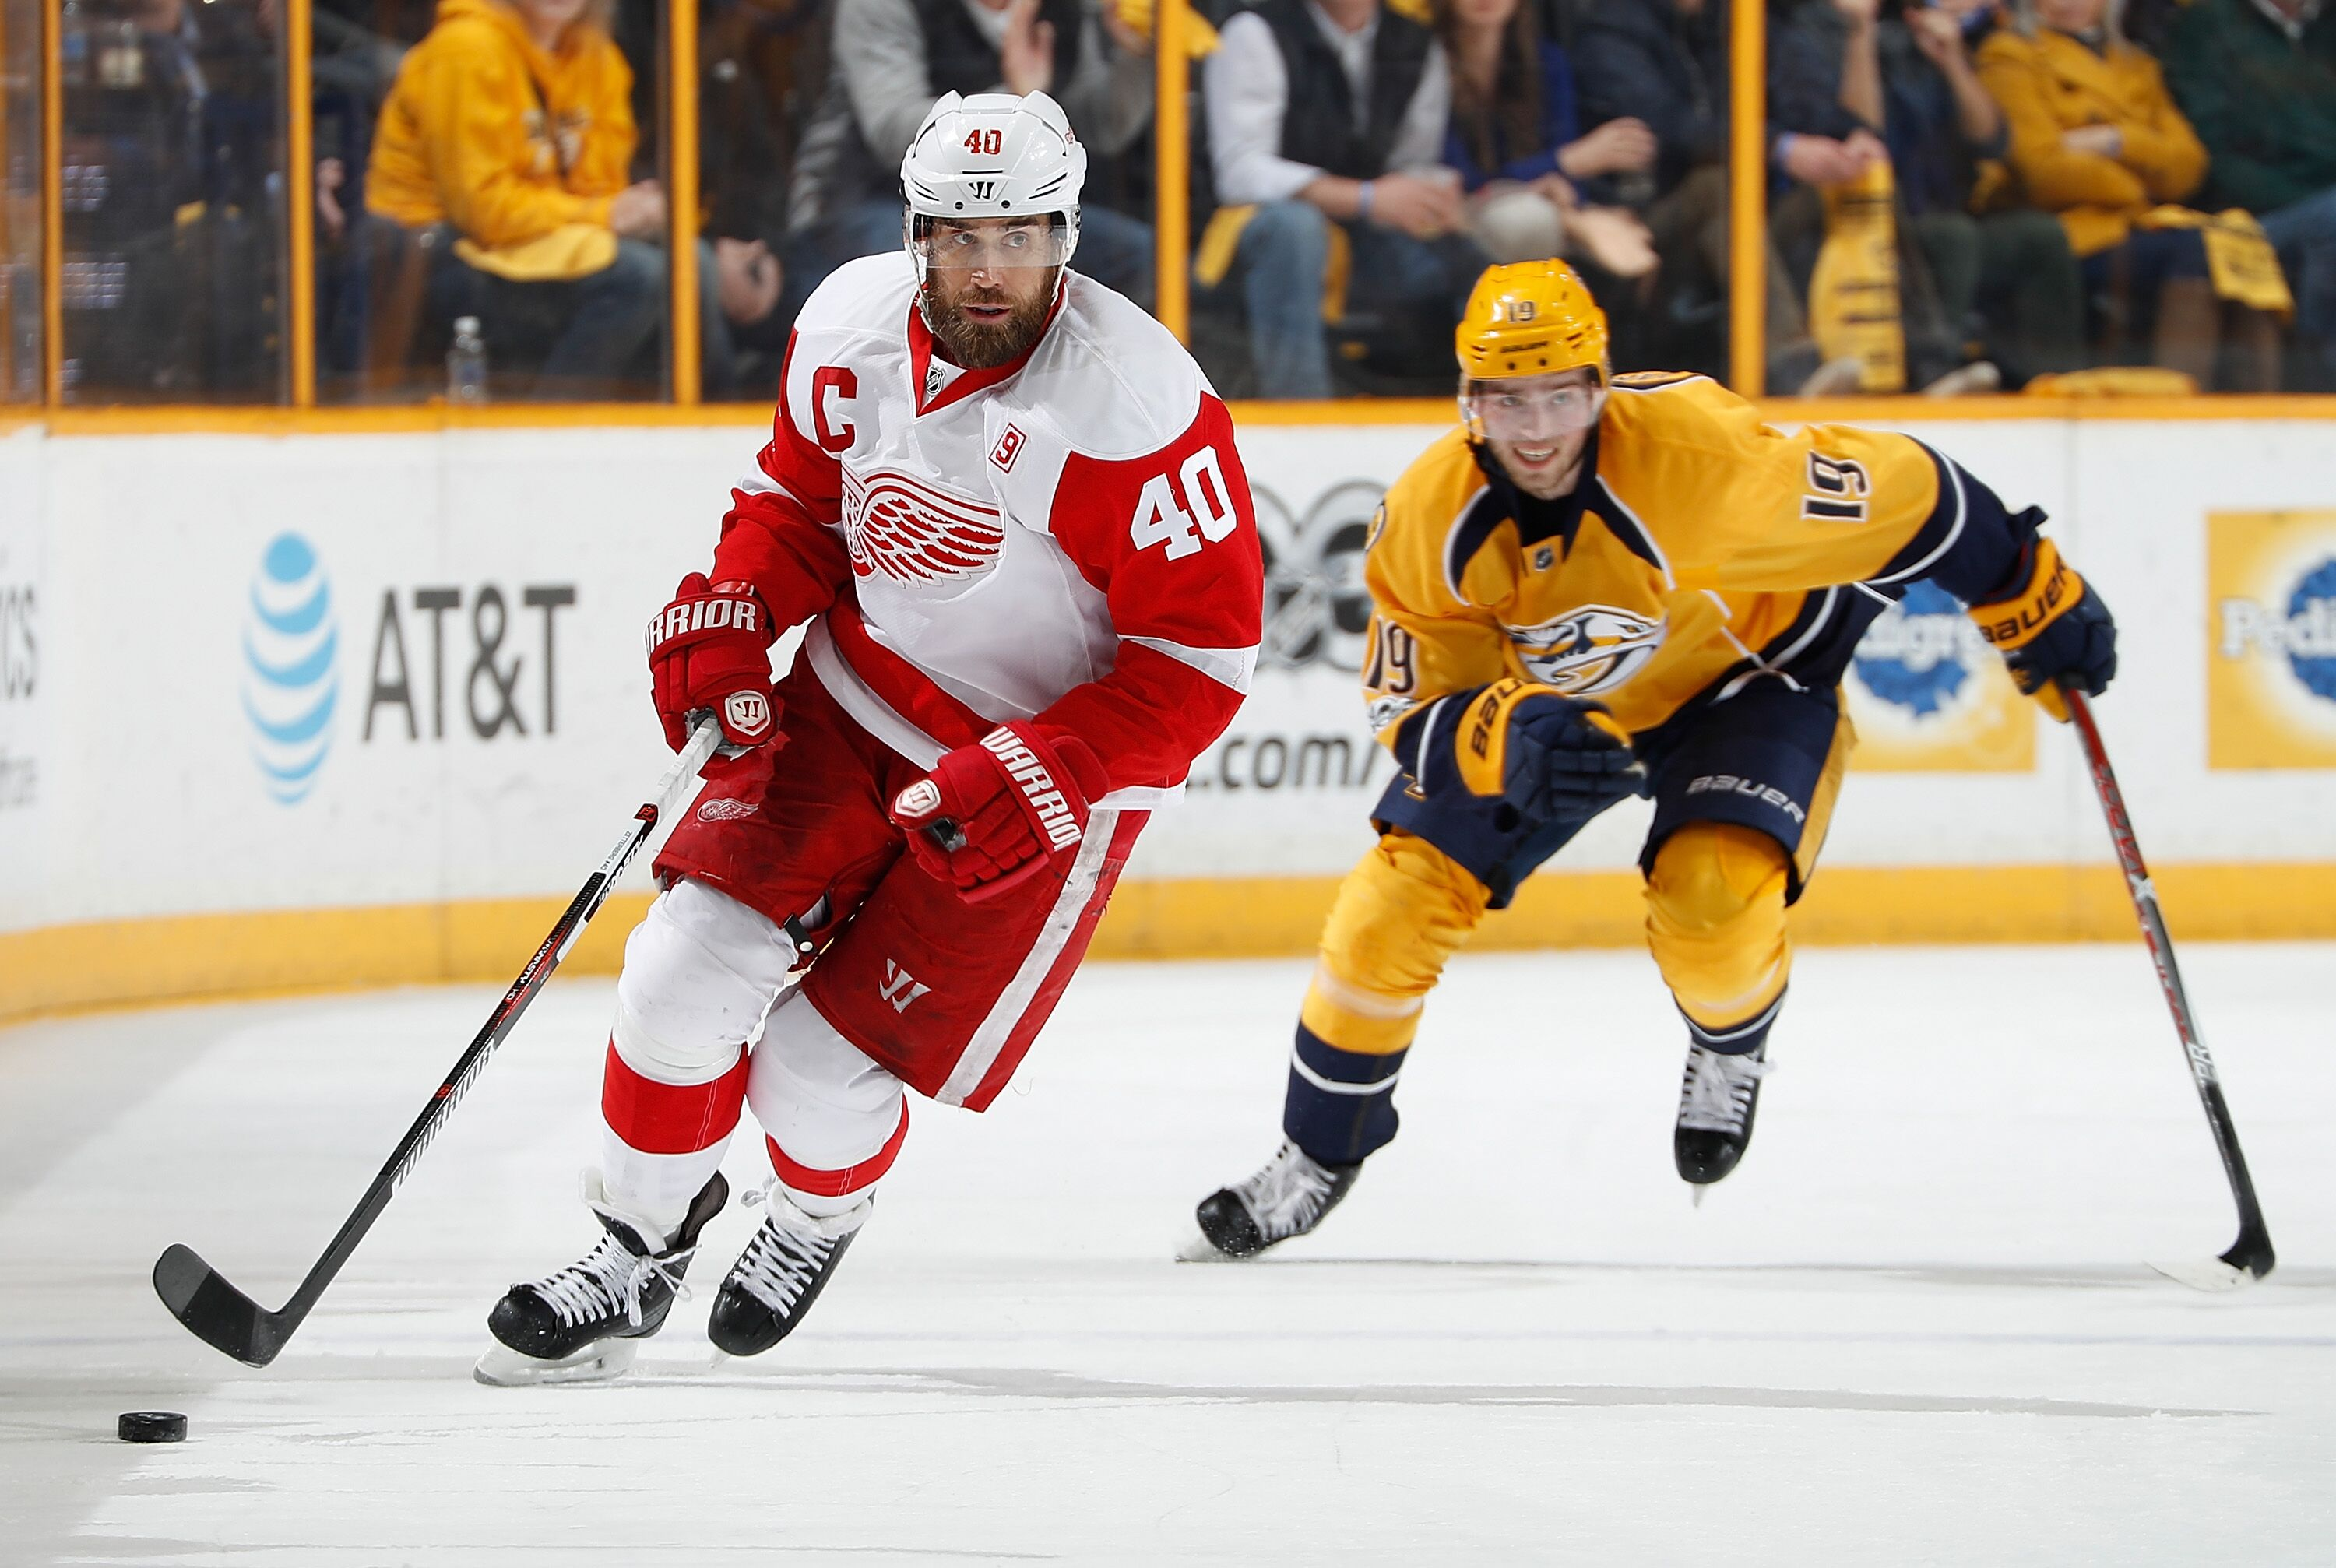 641229670-detroit-red-wings-vs-nashville-predators.jpg